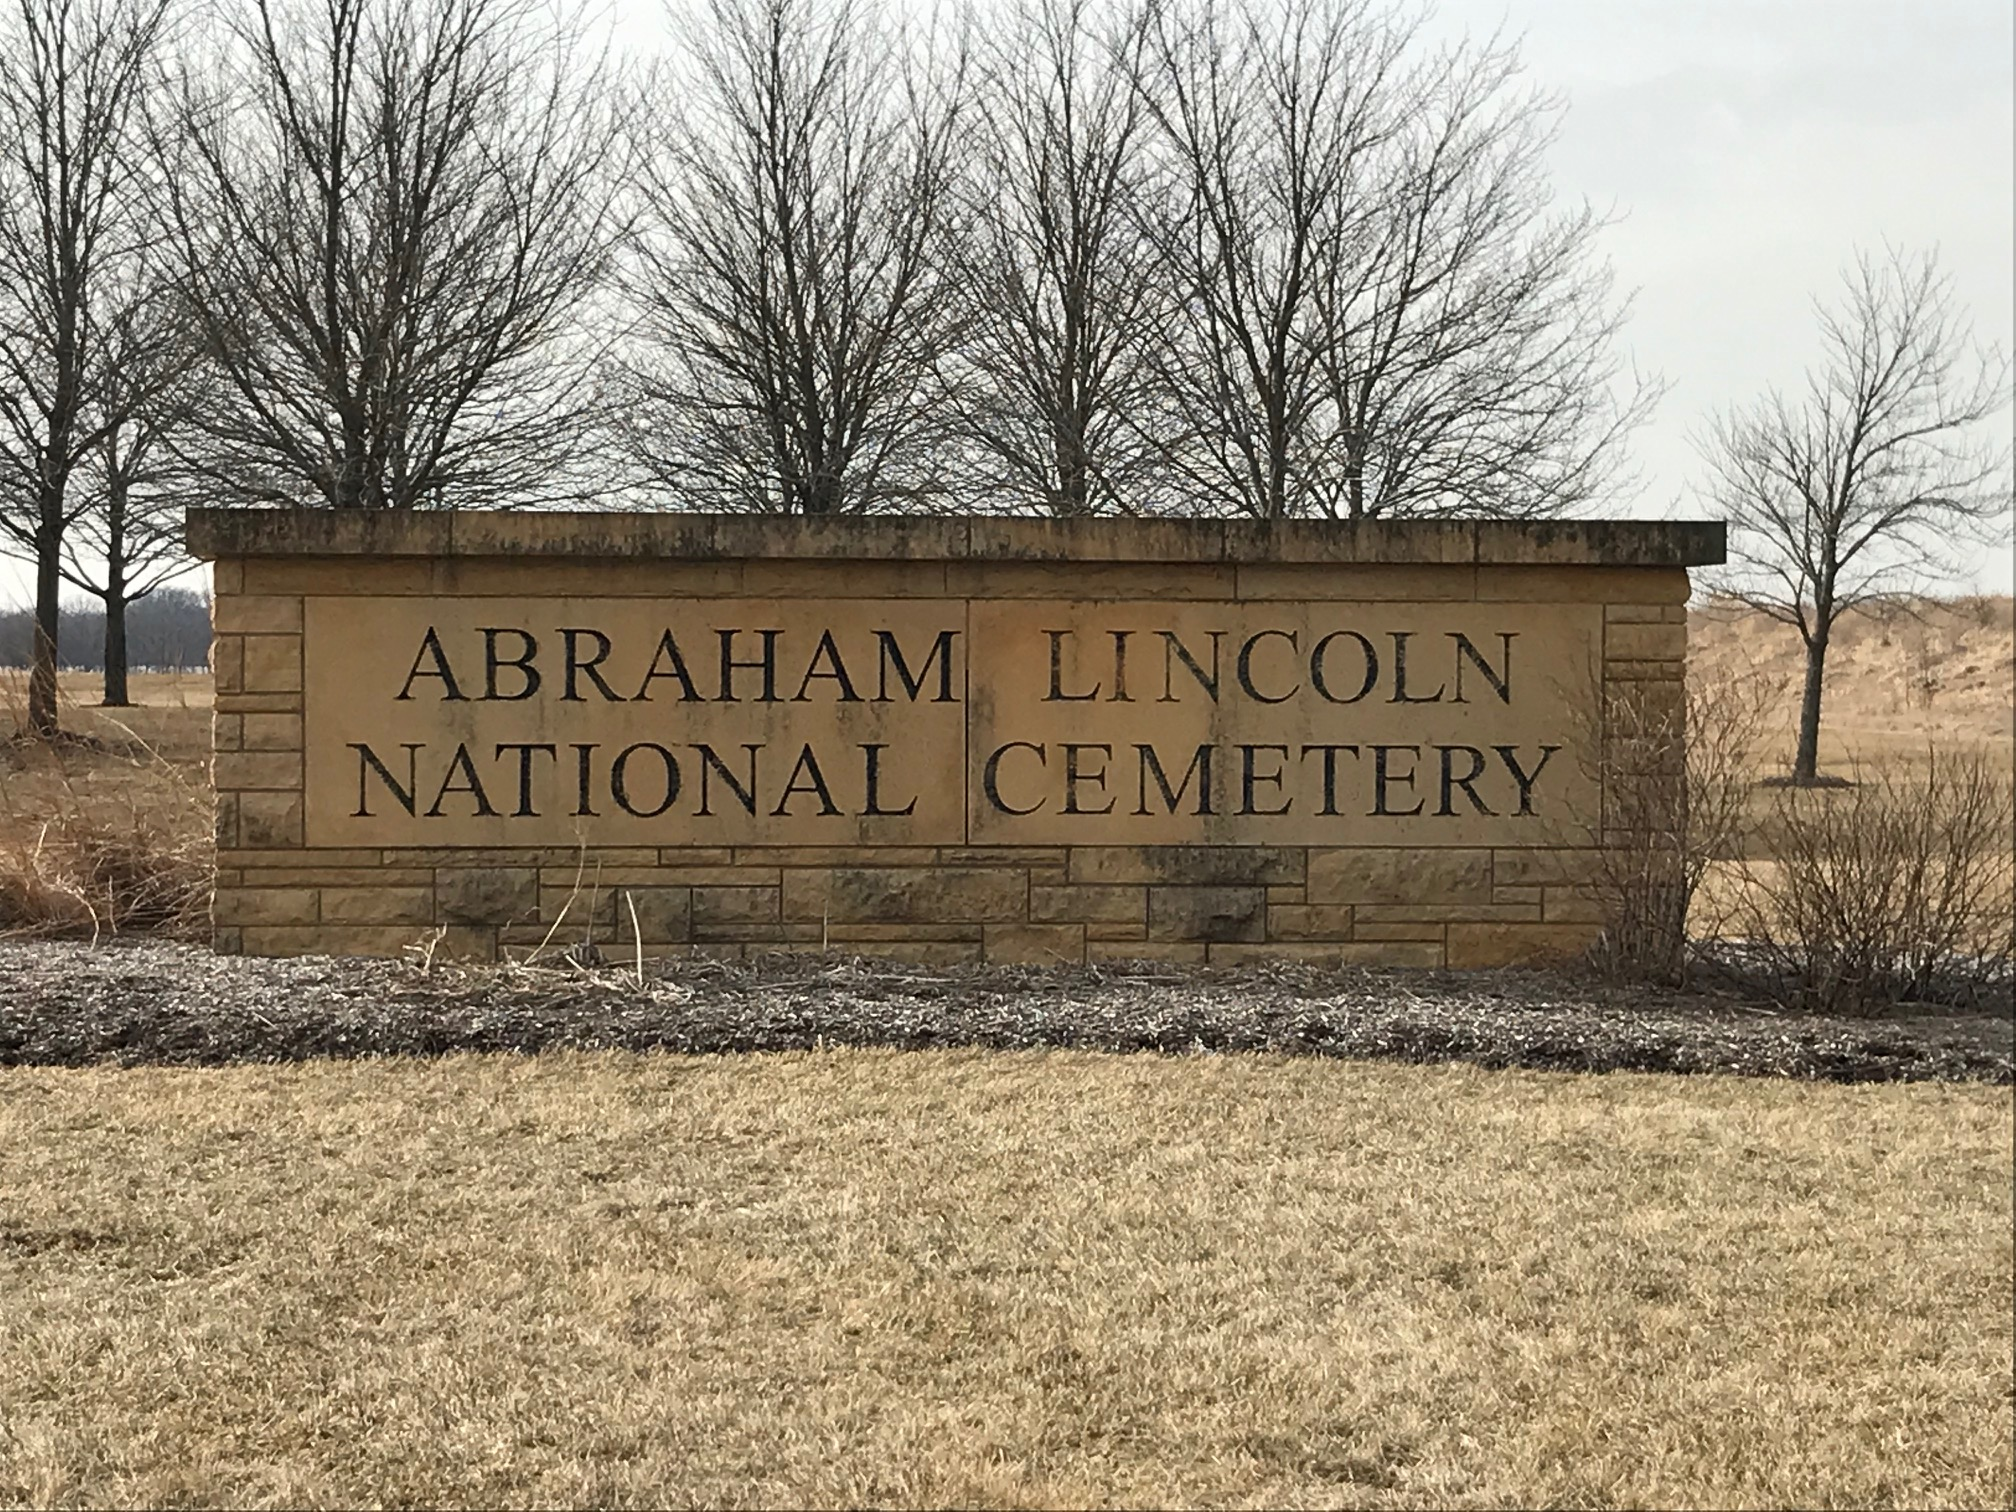 Abraham Lincoln Cemetery ► Carefree Systems Project